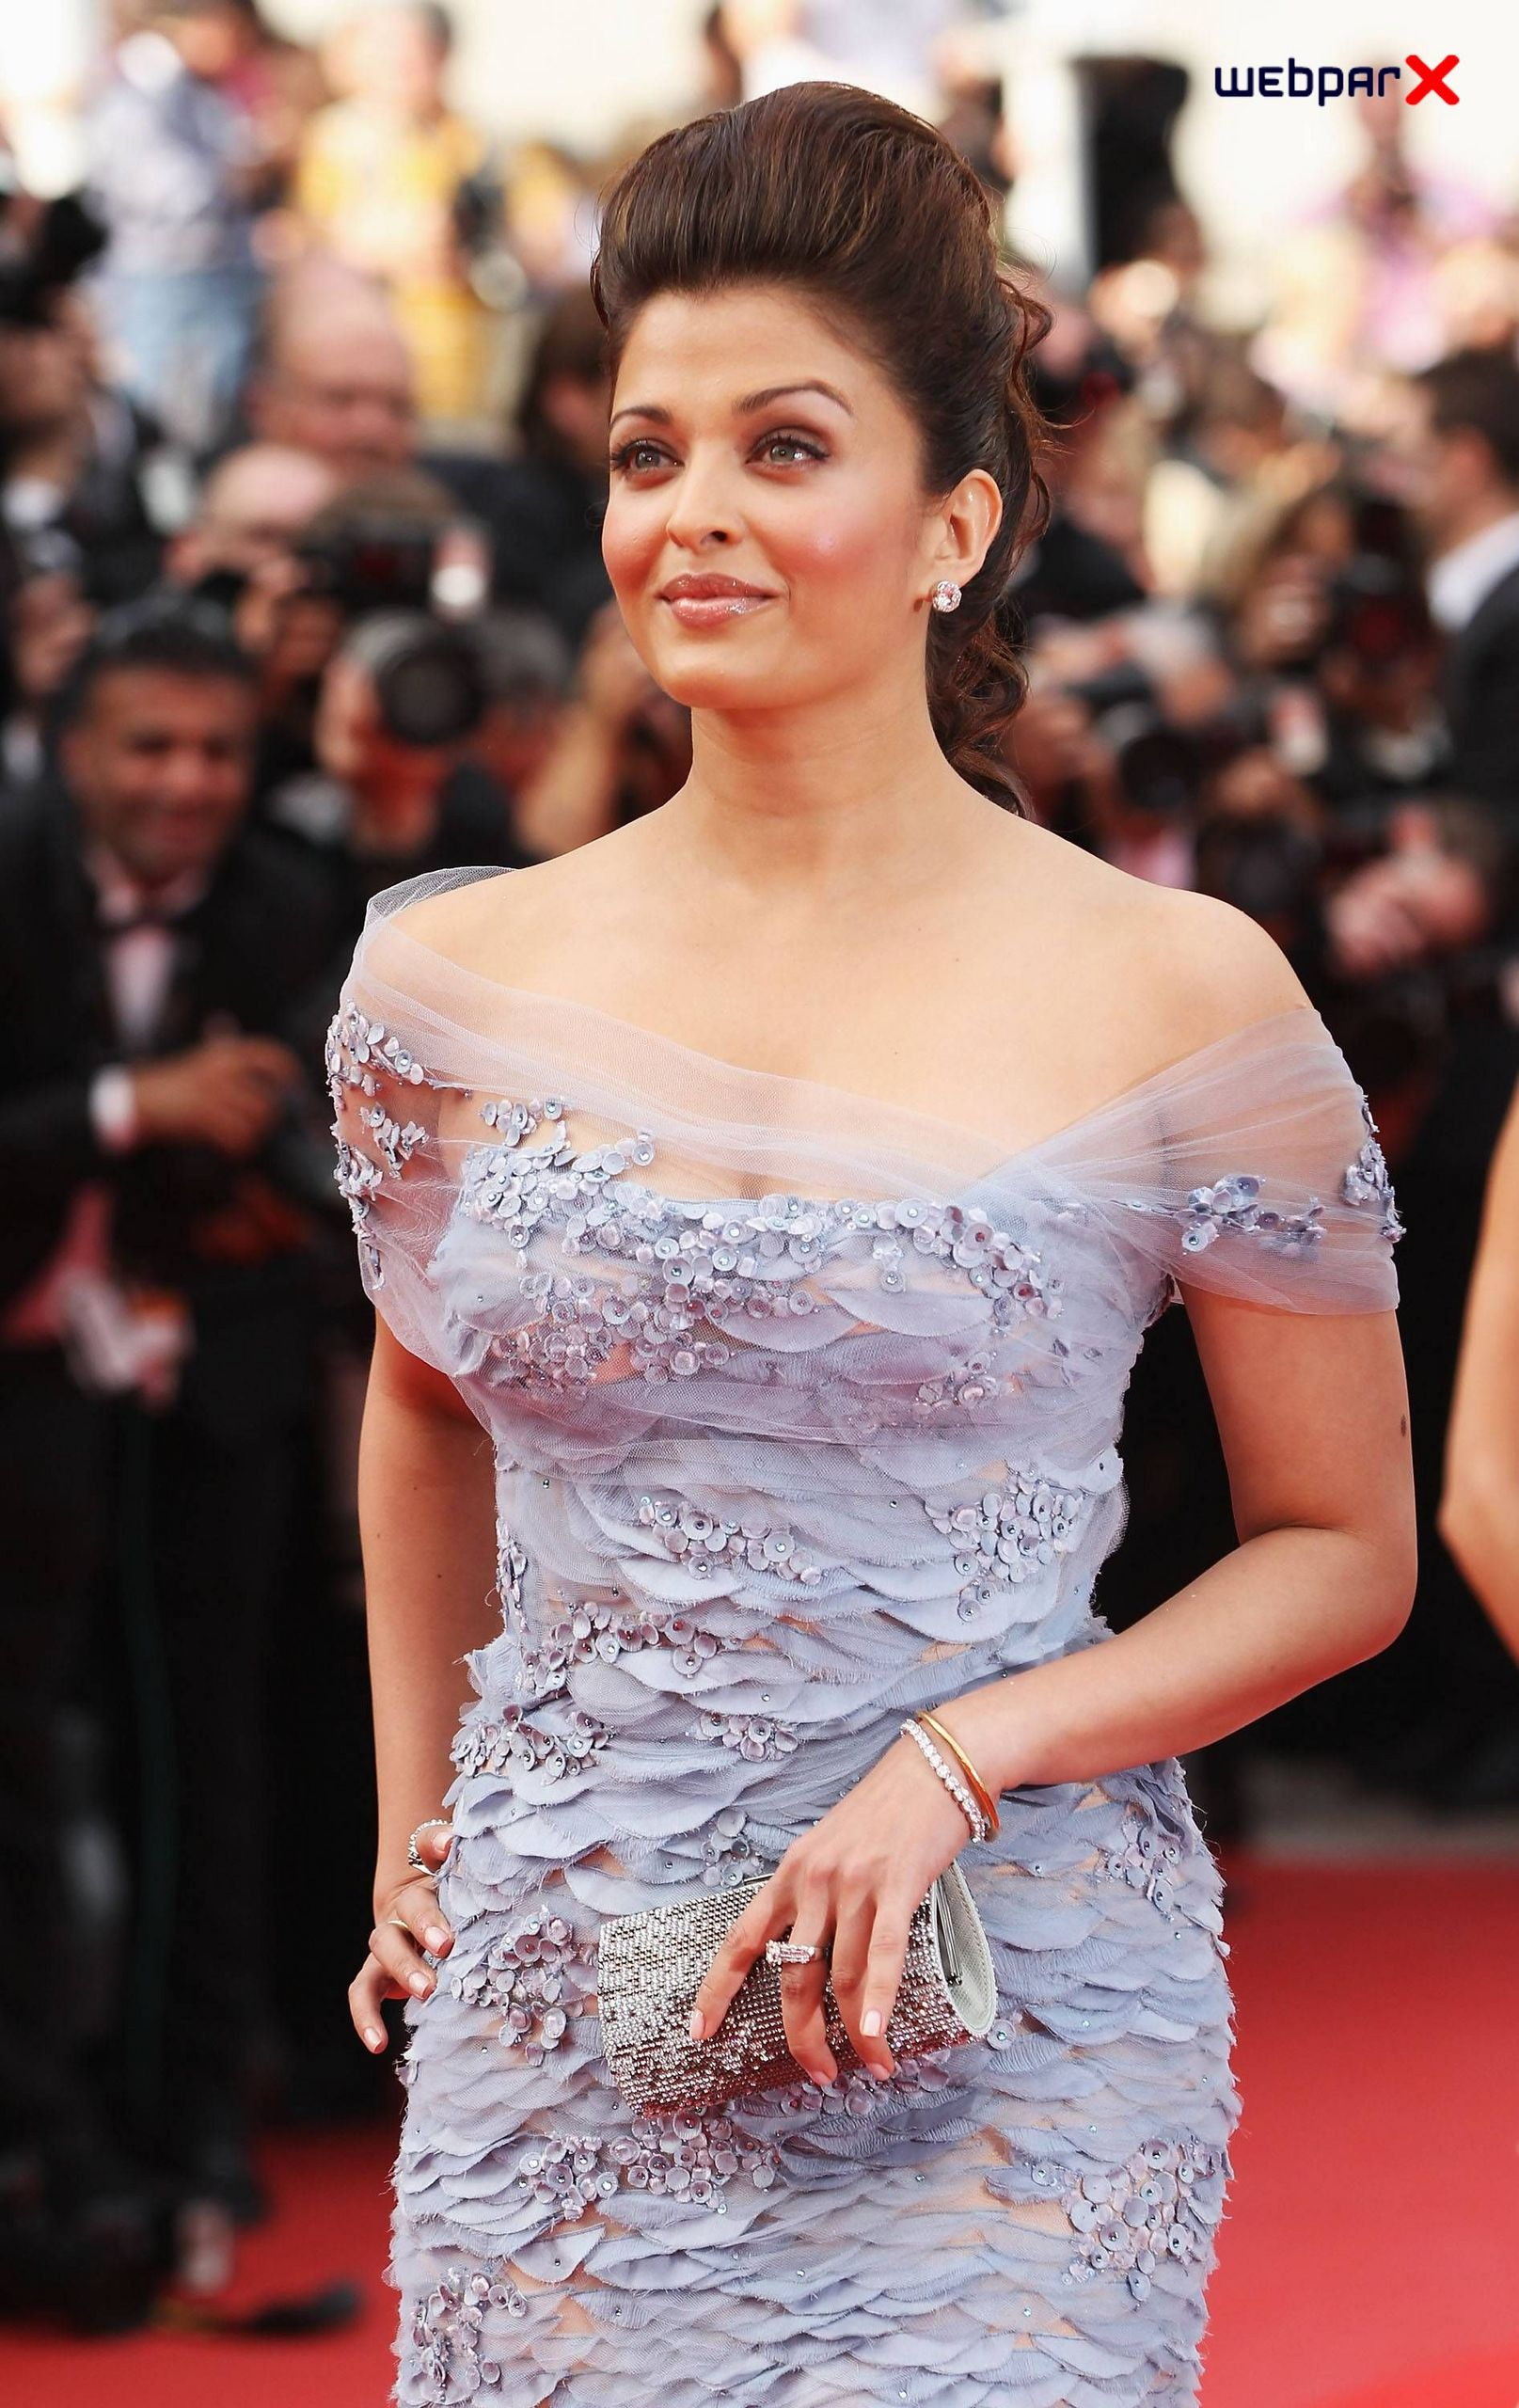 Aishwarya Rai Full HD gambar - World of Heroines